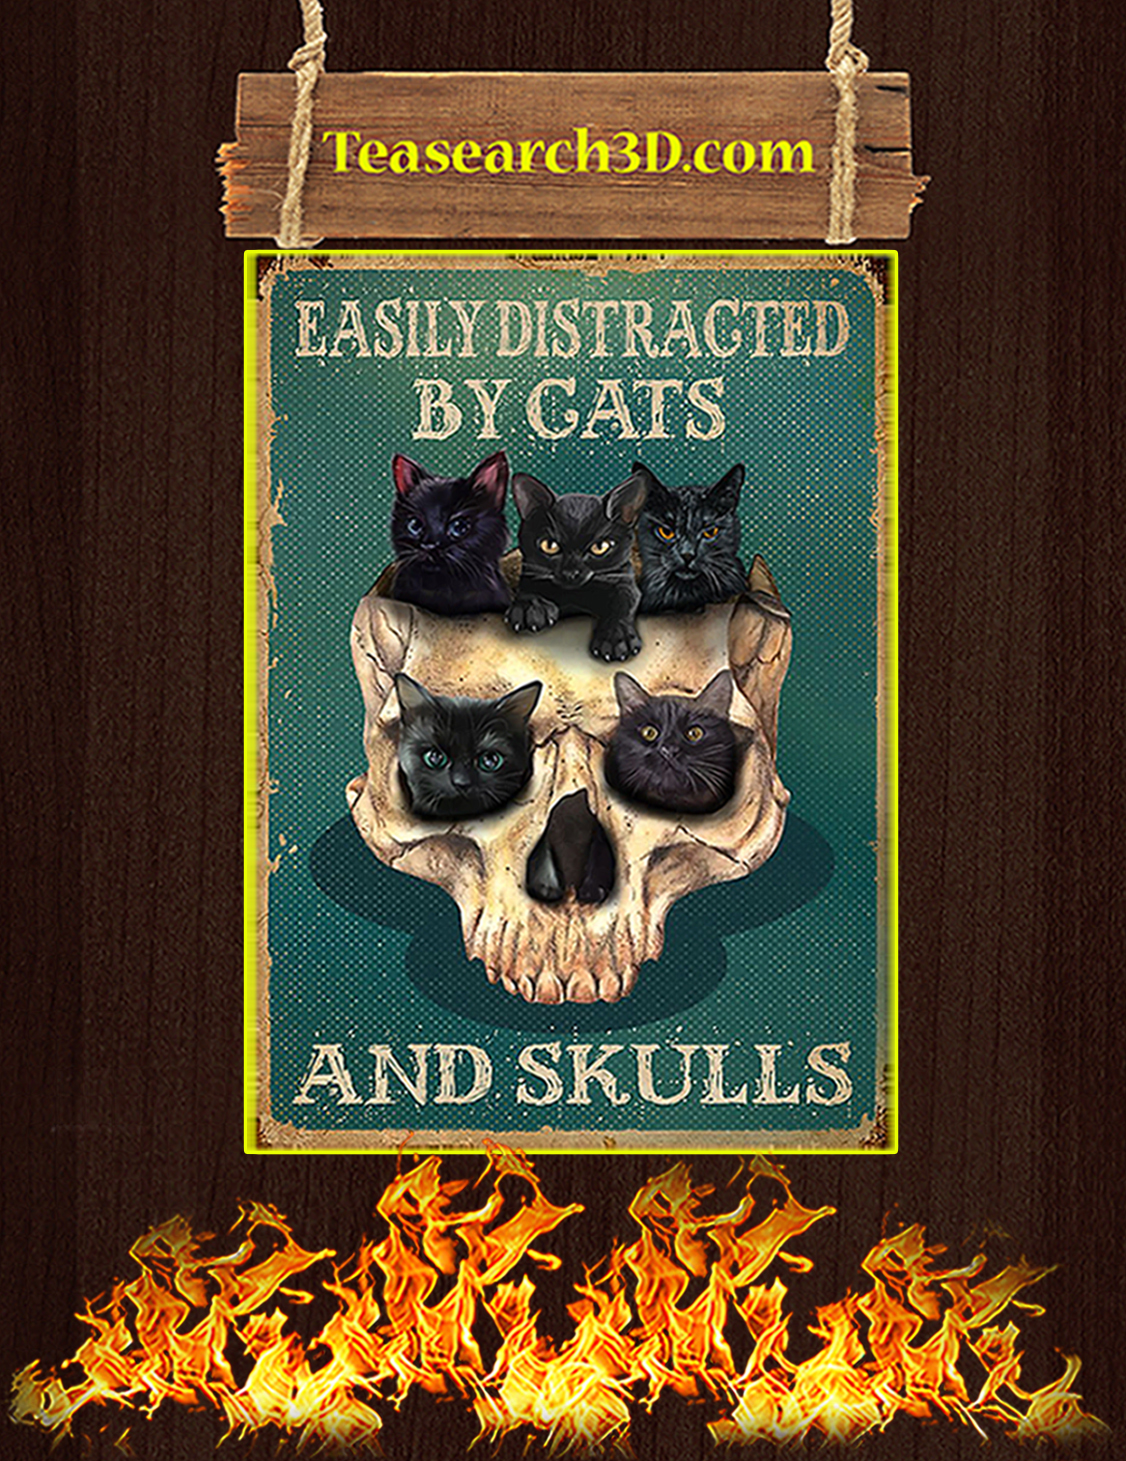 Easily distracted by cats and skulls poster A3